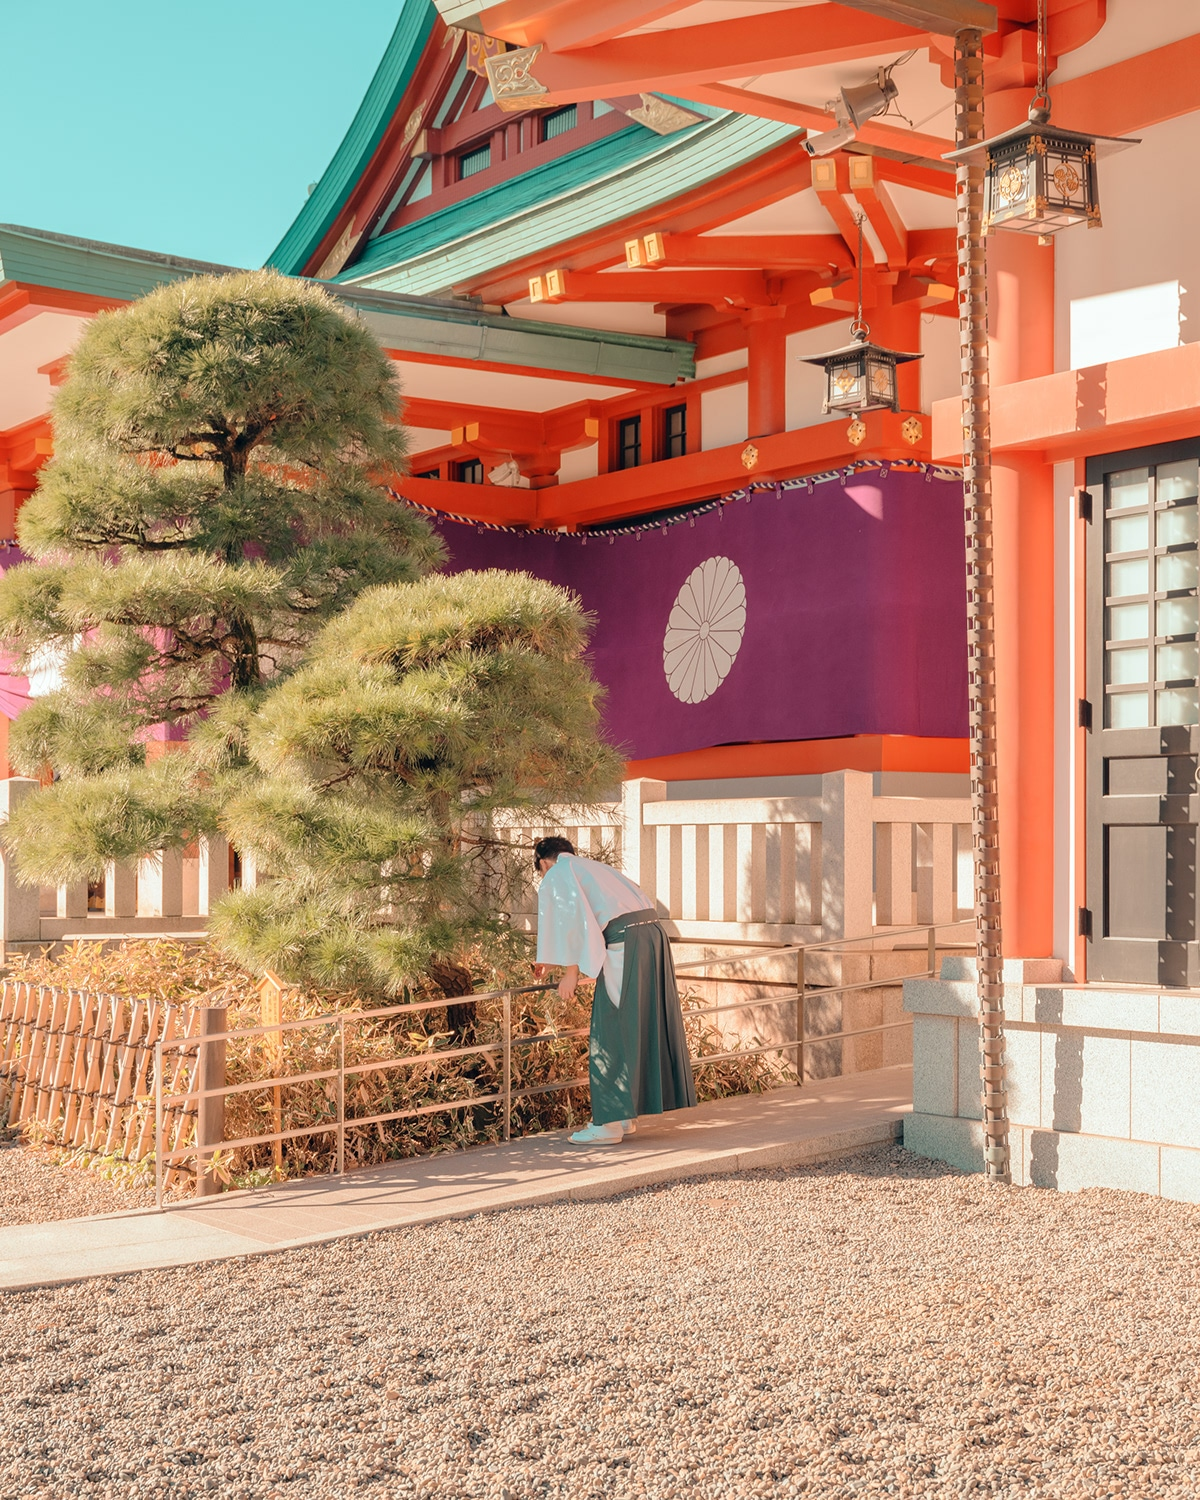 Temple in Tokyo